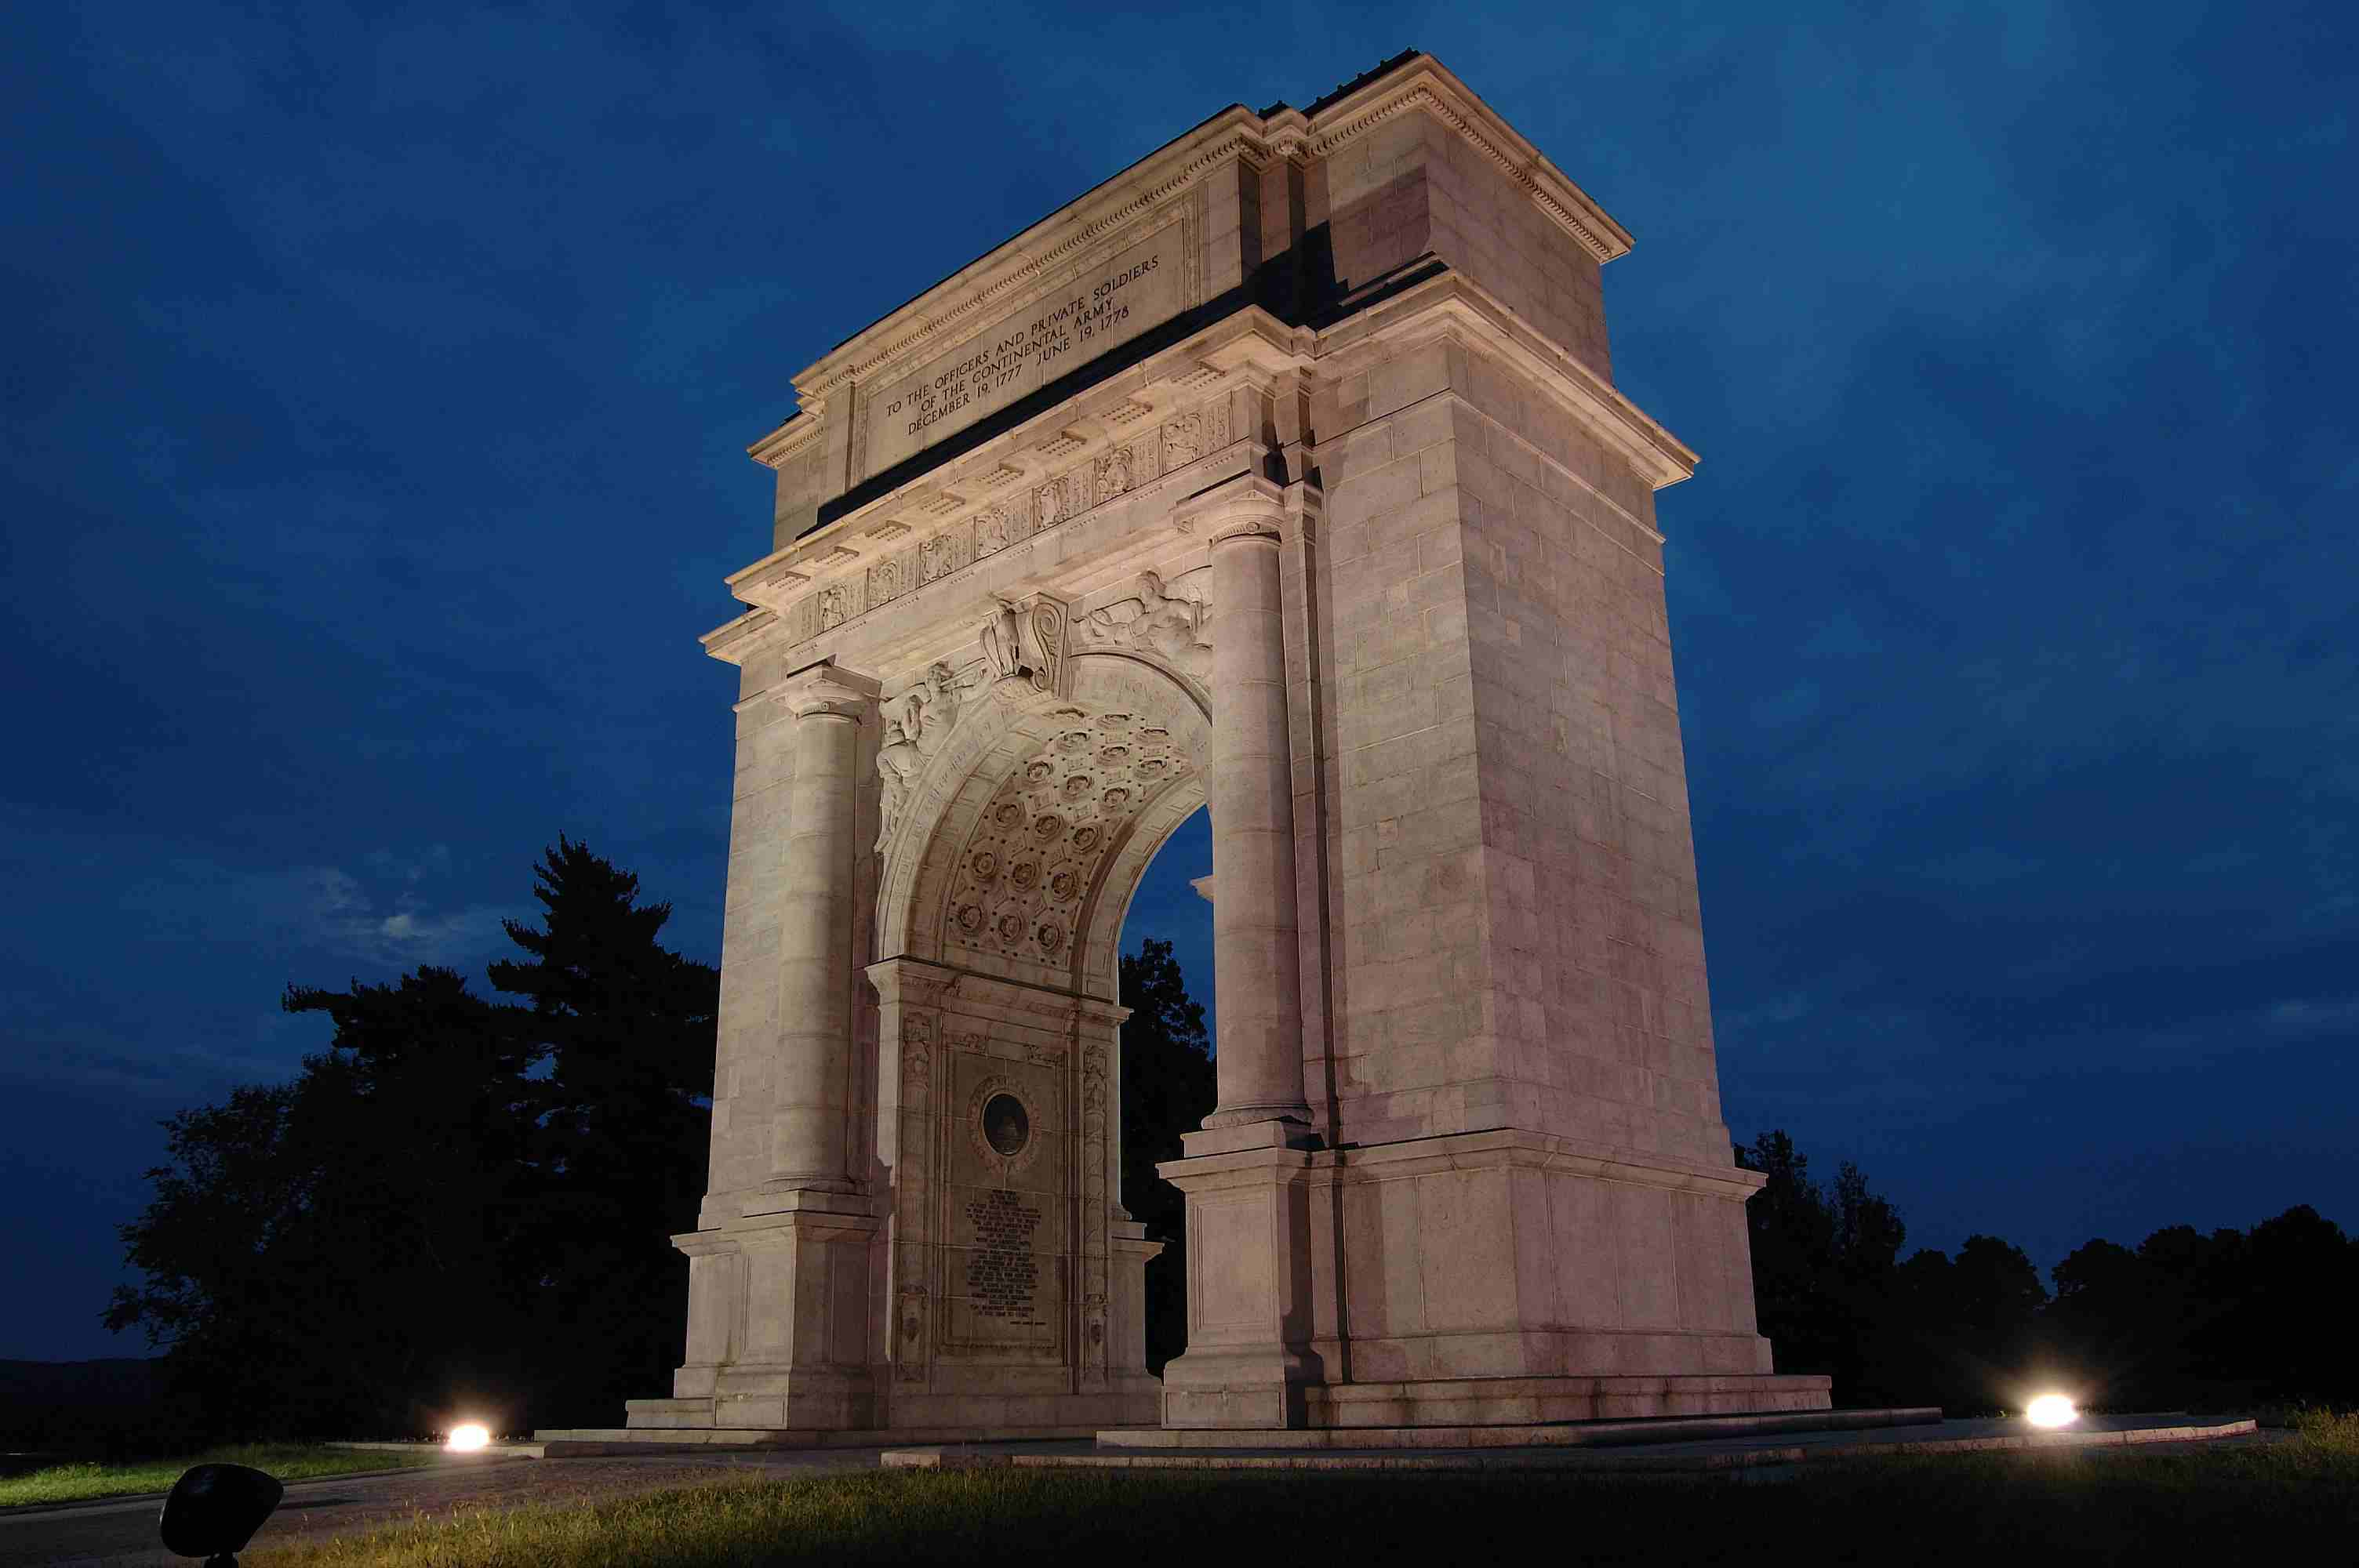 Valley Forge Arch at Valley Forge National Historical Park in Pennsylvania